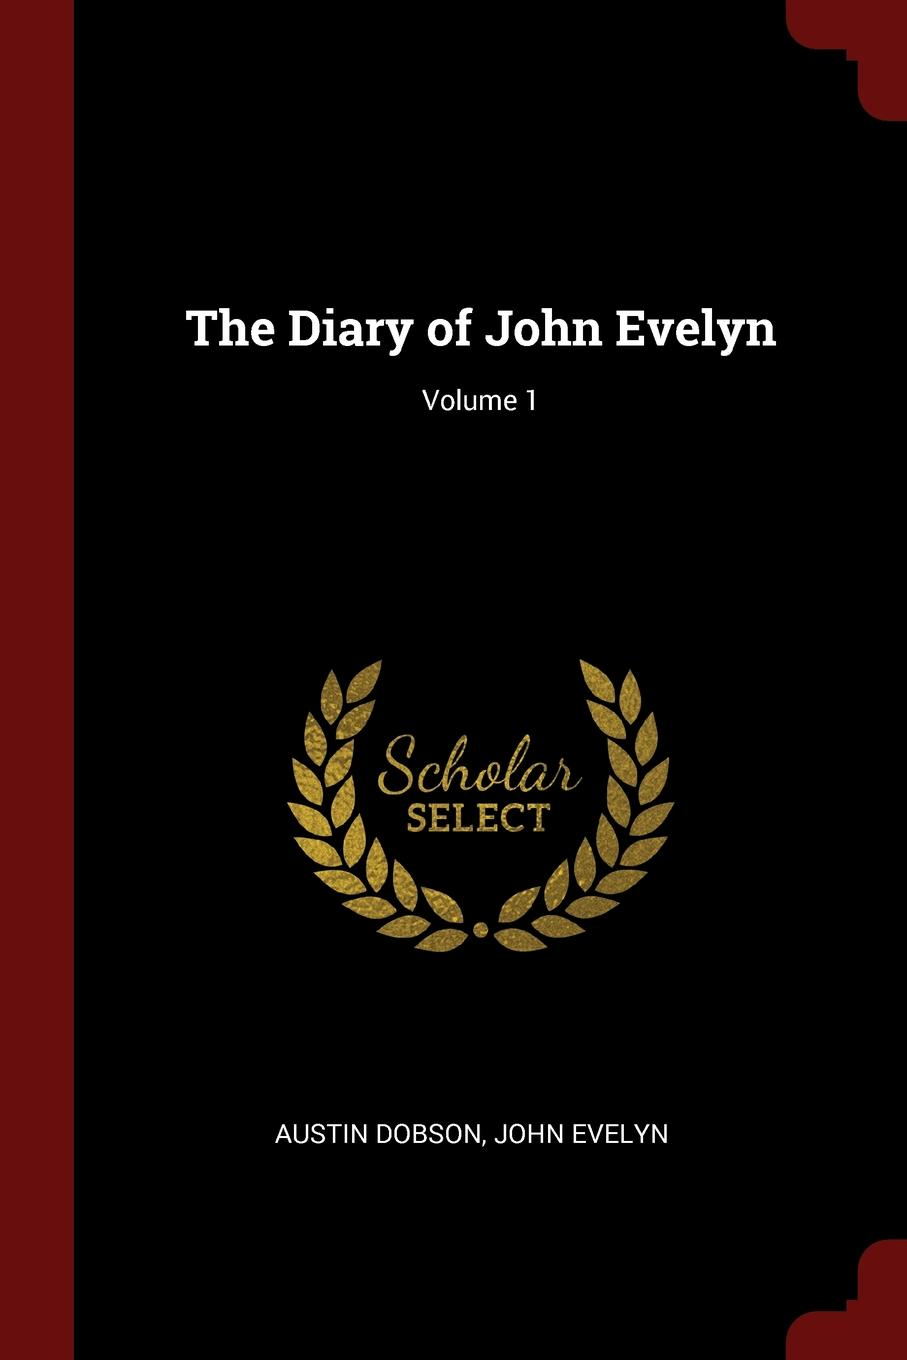 цена Austin Dobson, John Evelyn The Diary of John Evelyn; Volume 1 в интернет-магазинах